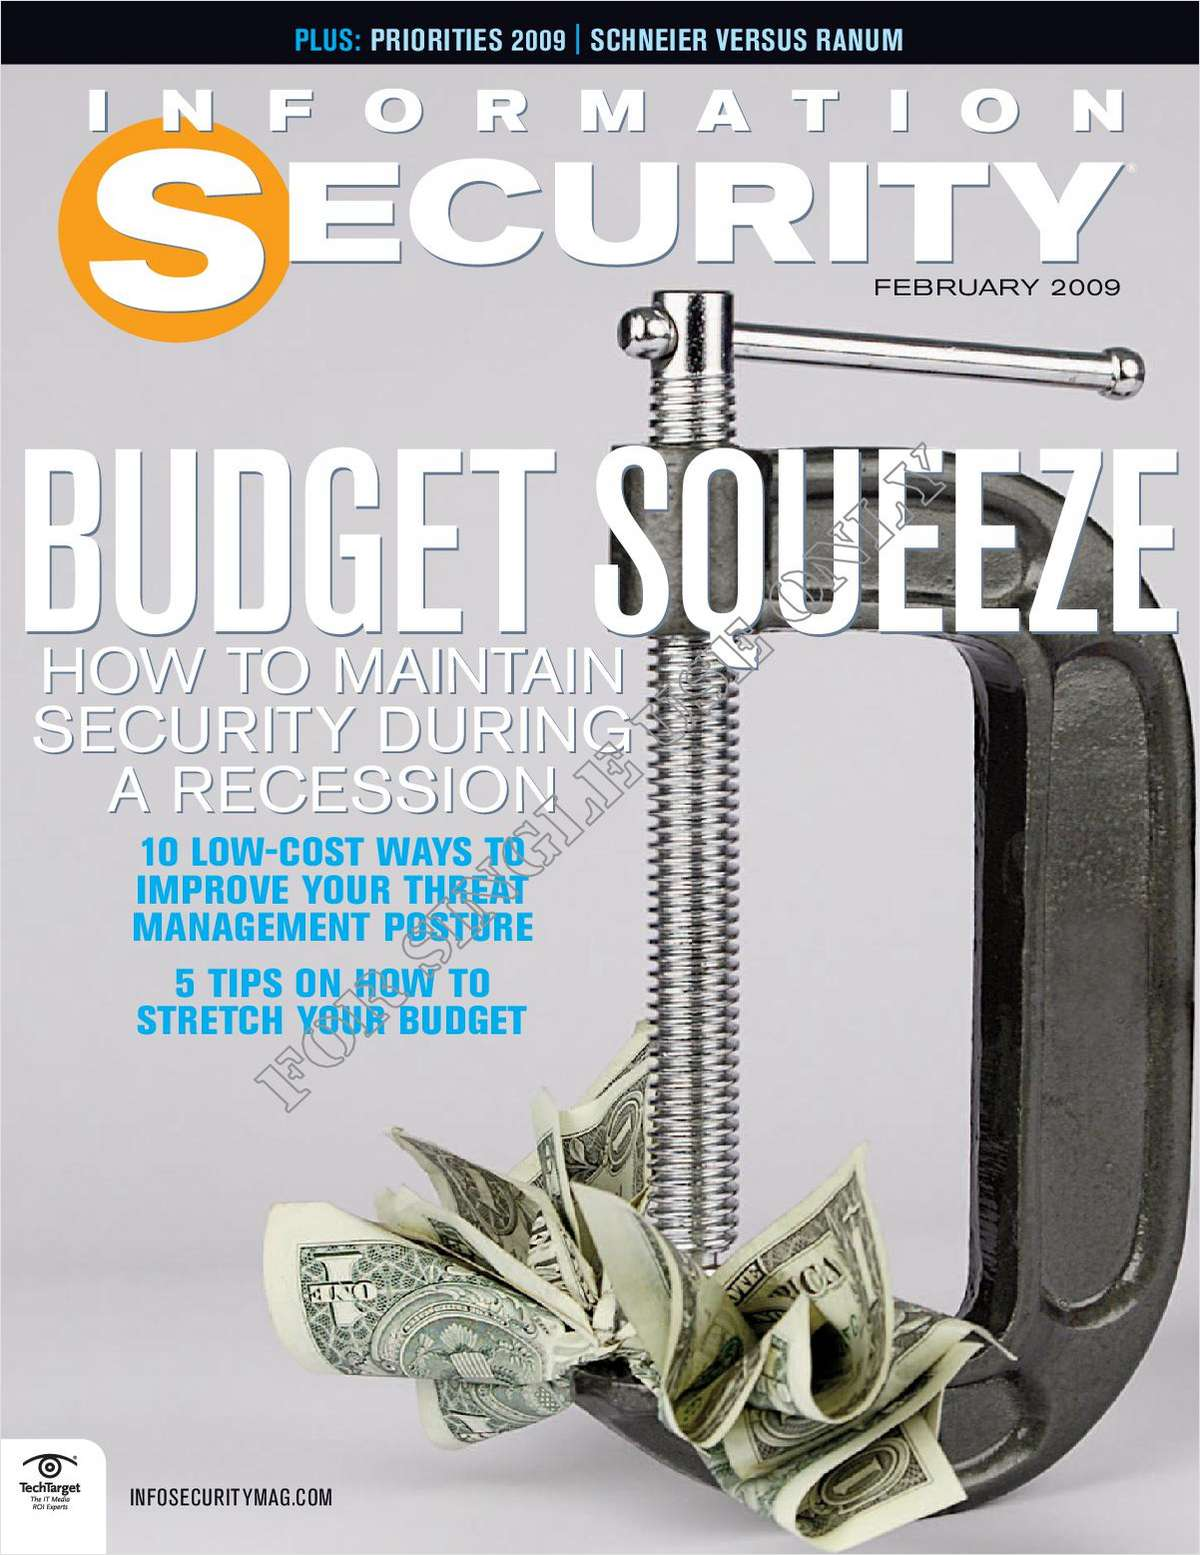 Budget Squeeze: How to Maintain Security During a Recession